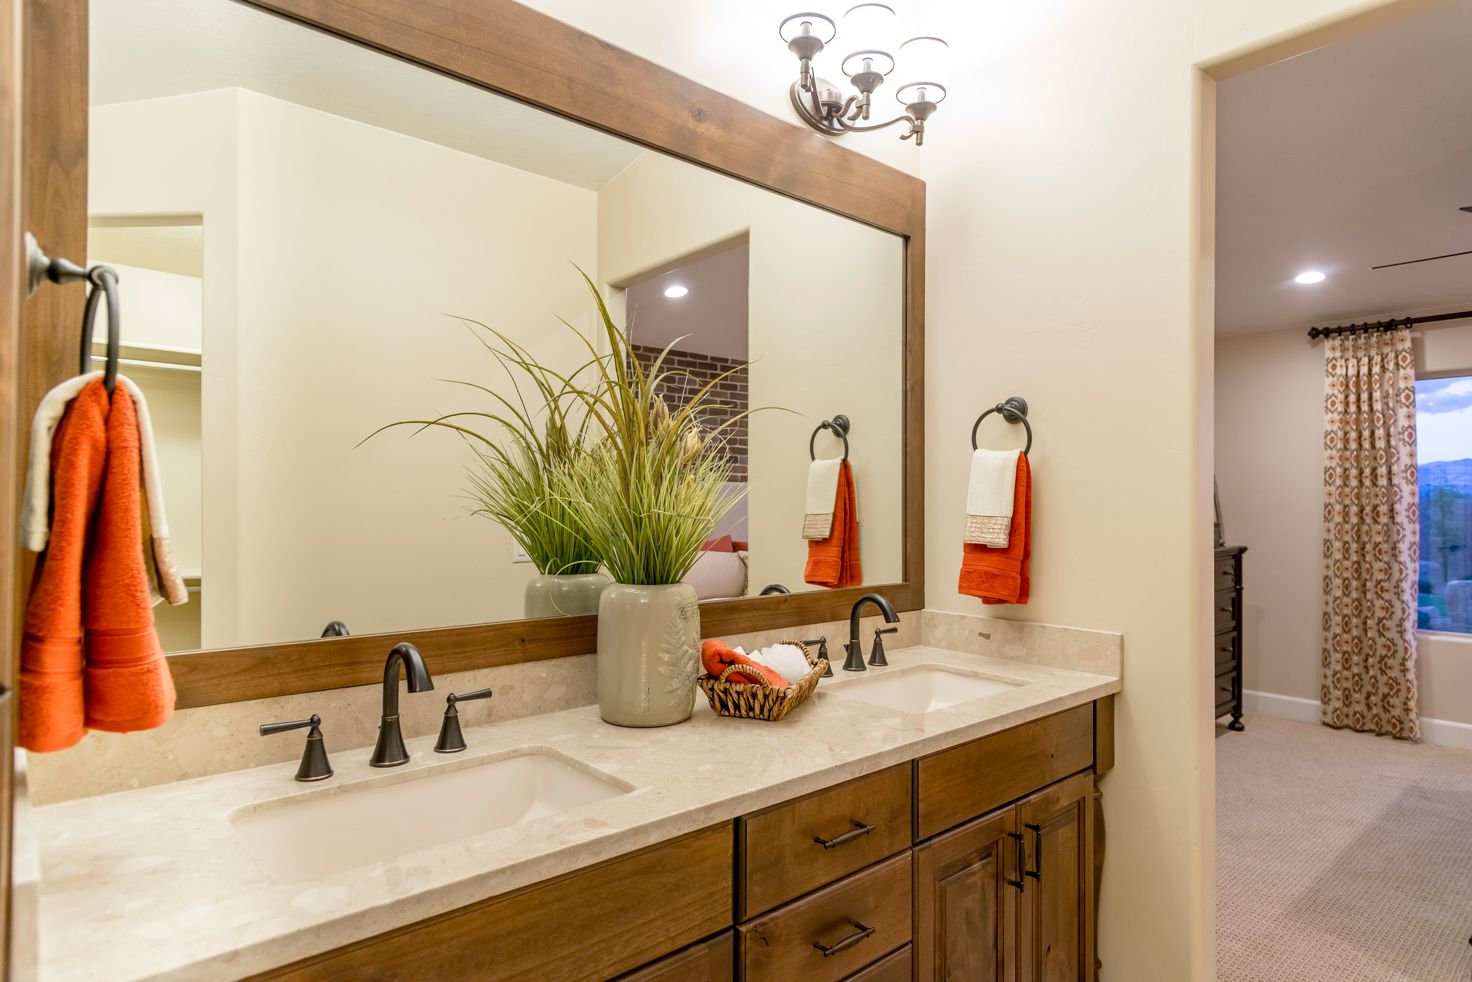 Bathroom featured in the Arroyo Plan 1872 By Ence Homes in St. George, UT